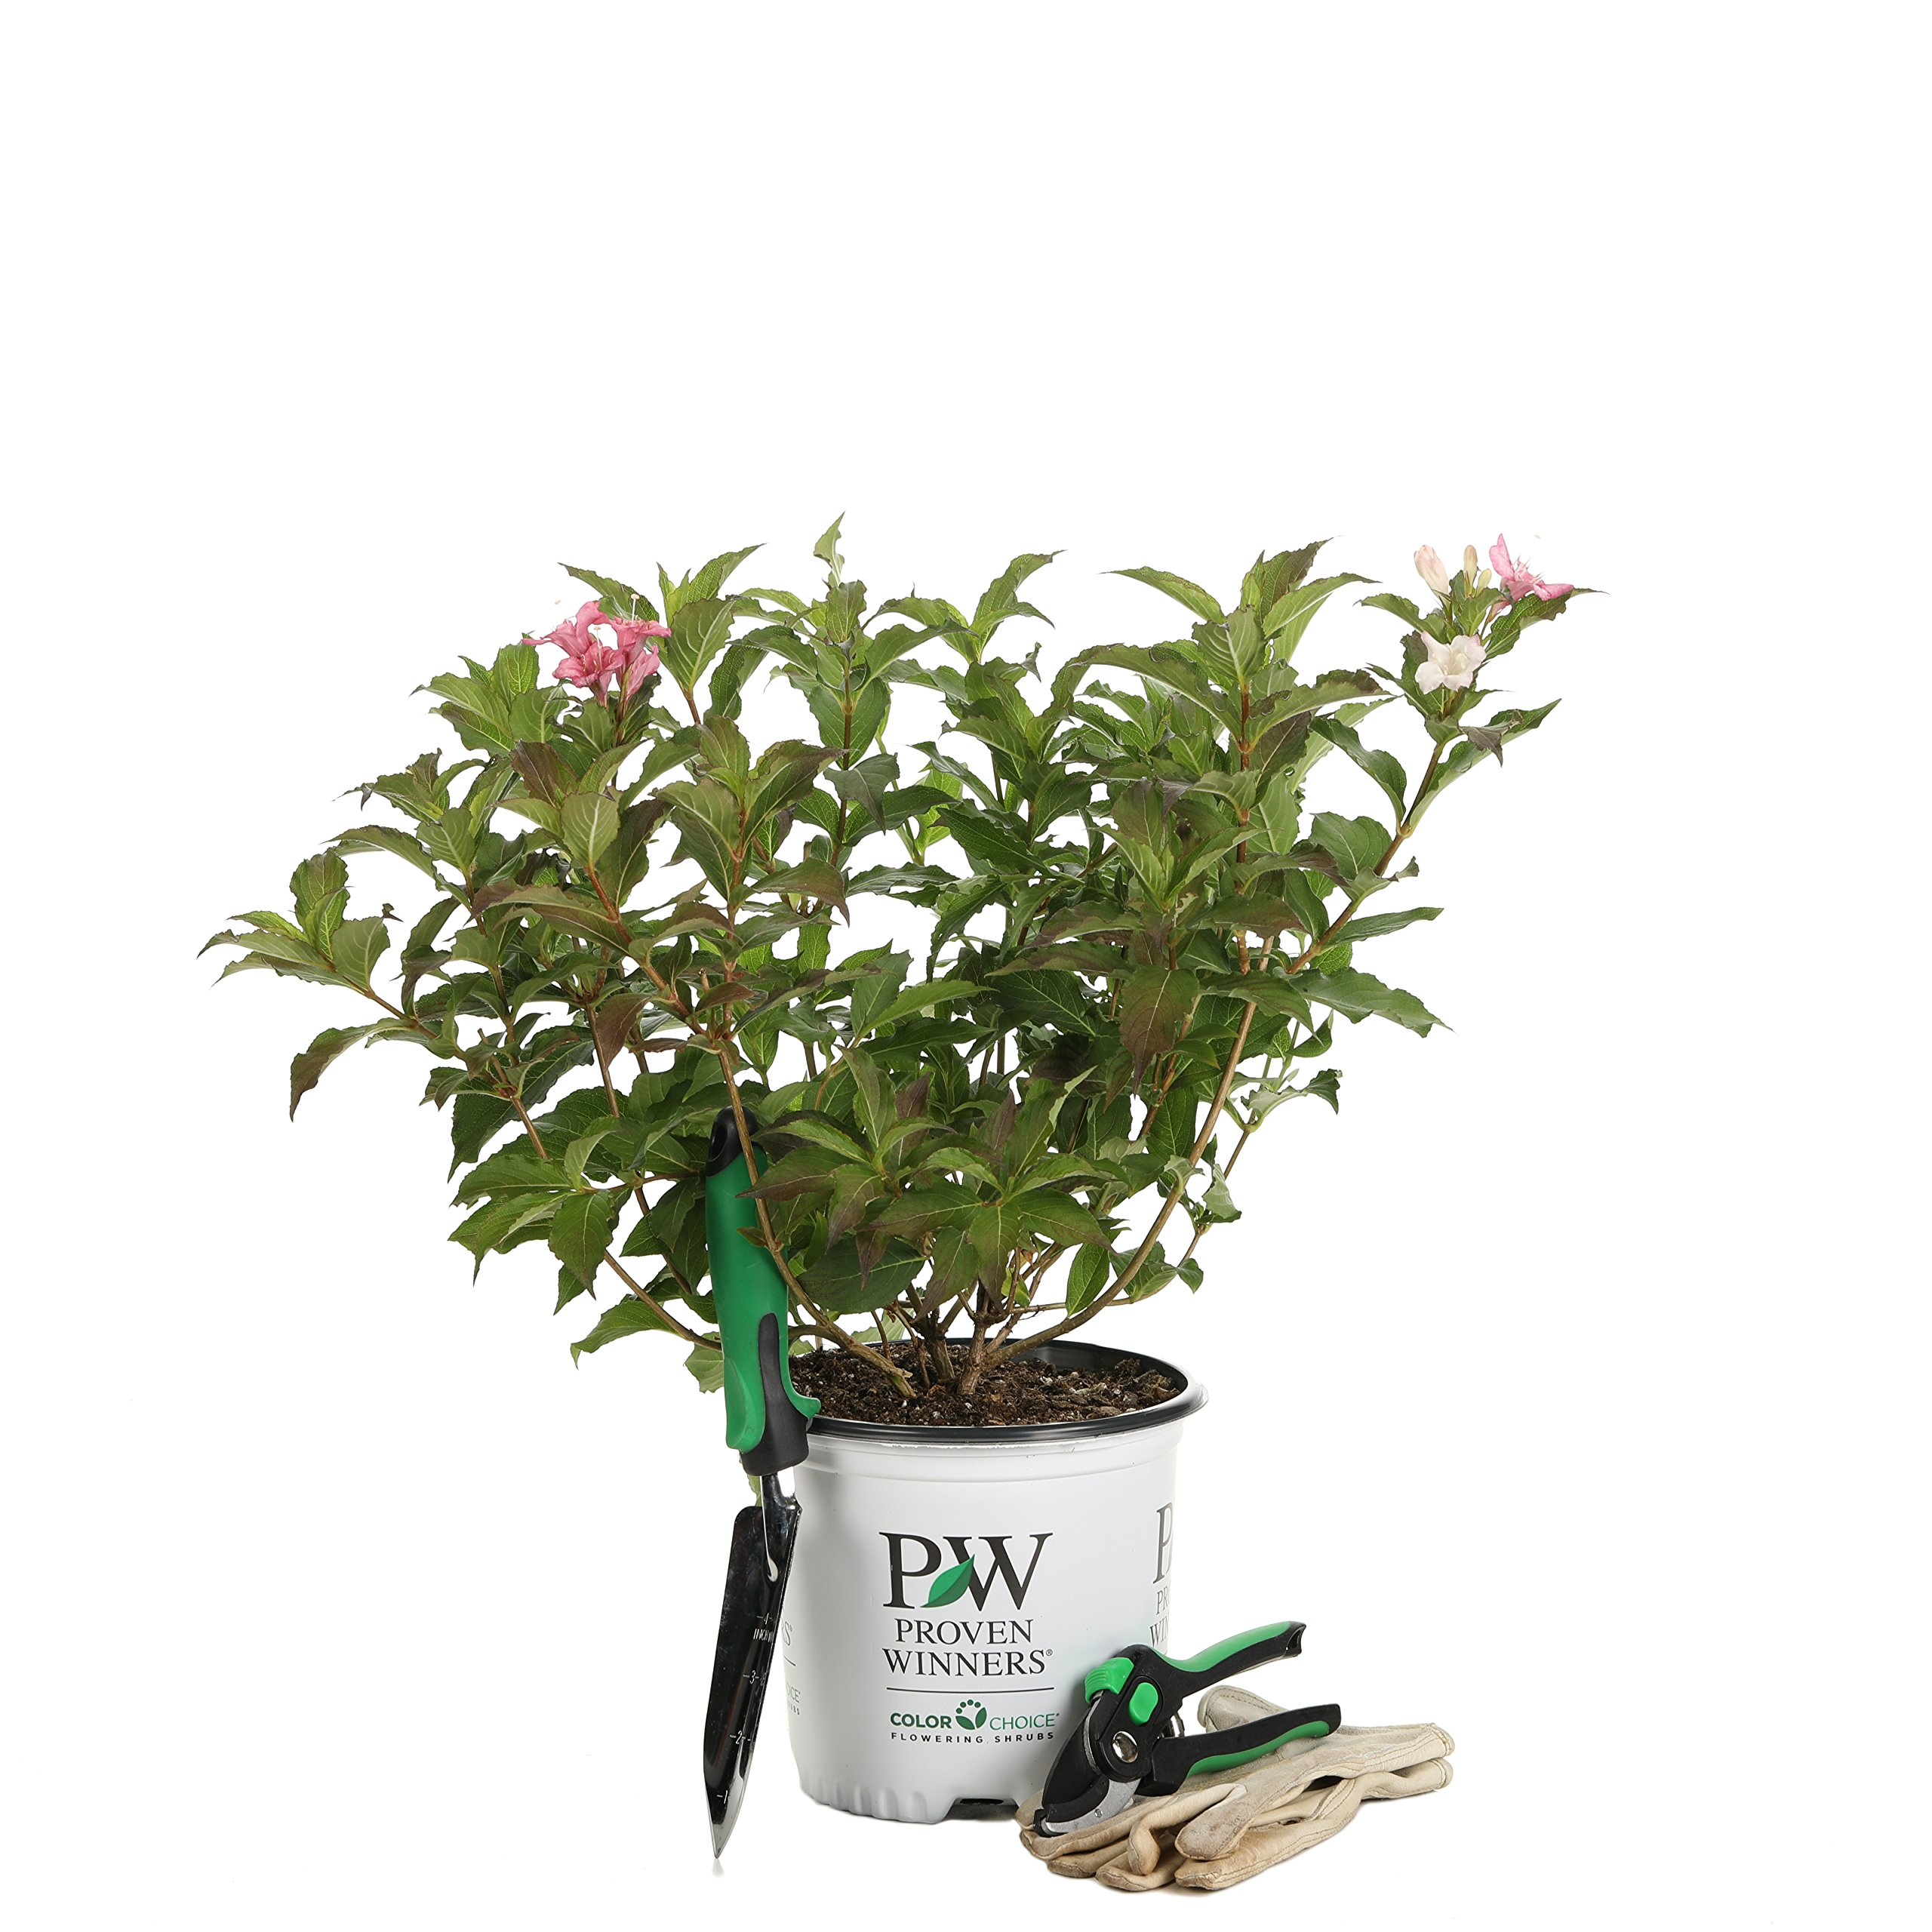 Czechmark Trilogy (Weigela) Live Shrub, White, Pink, and Red Flowers, 1 Gallon by Proven Winners (Image #8)